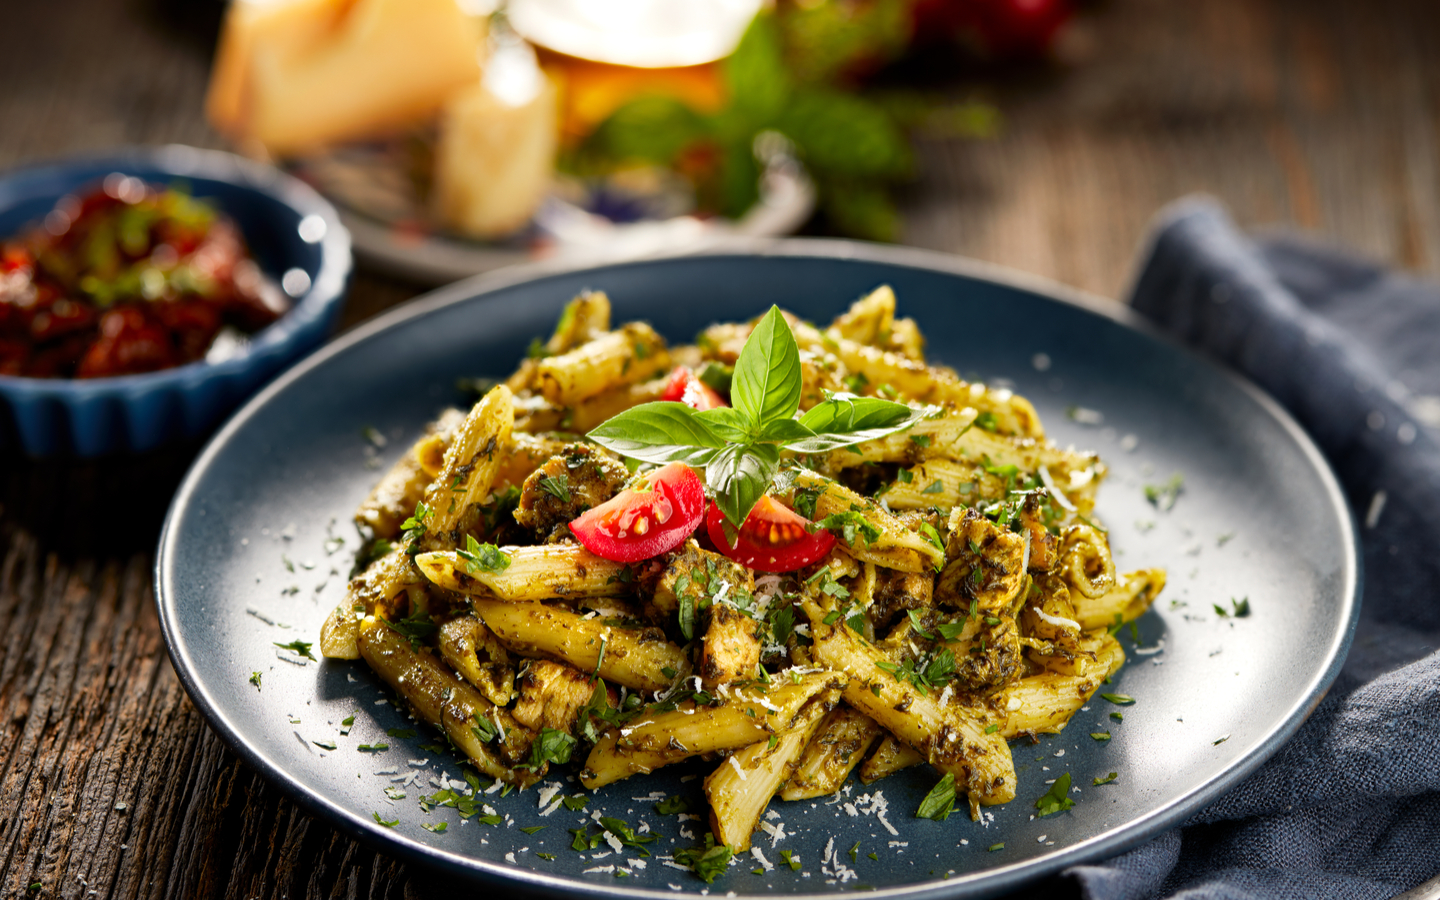 A plate of healthy Penne Pasta for health conscious people by UNDER500 restaurant